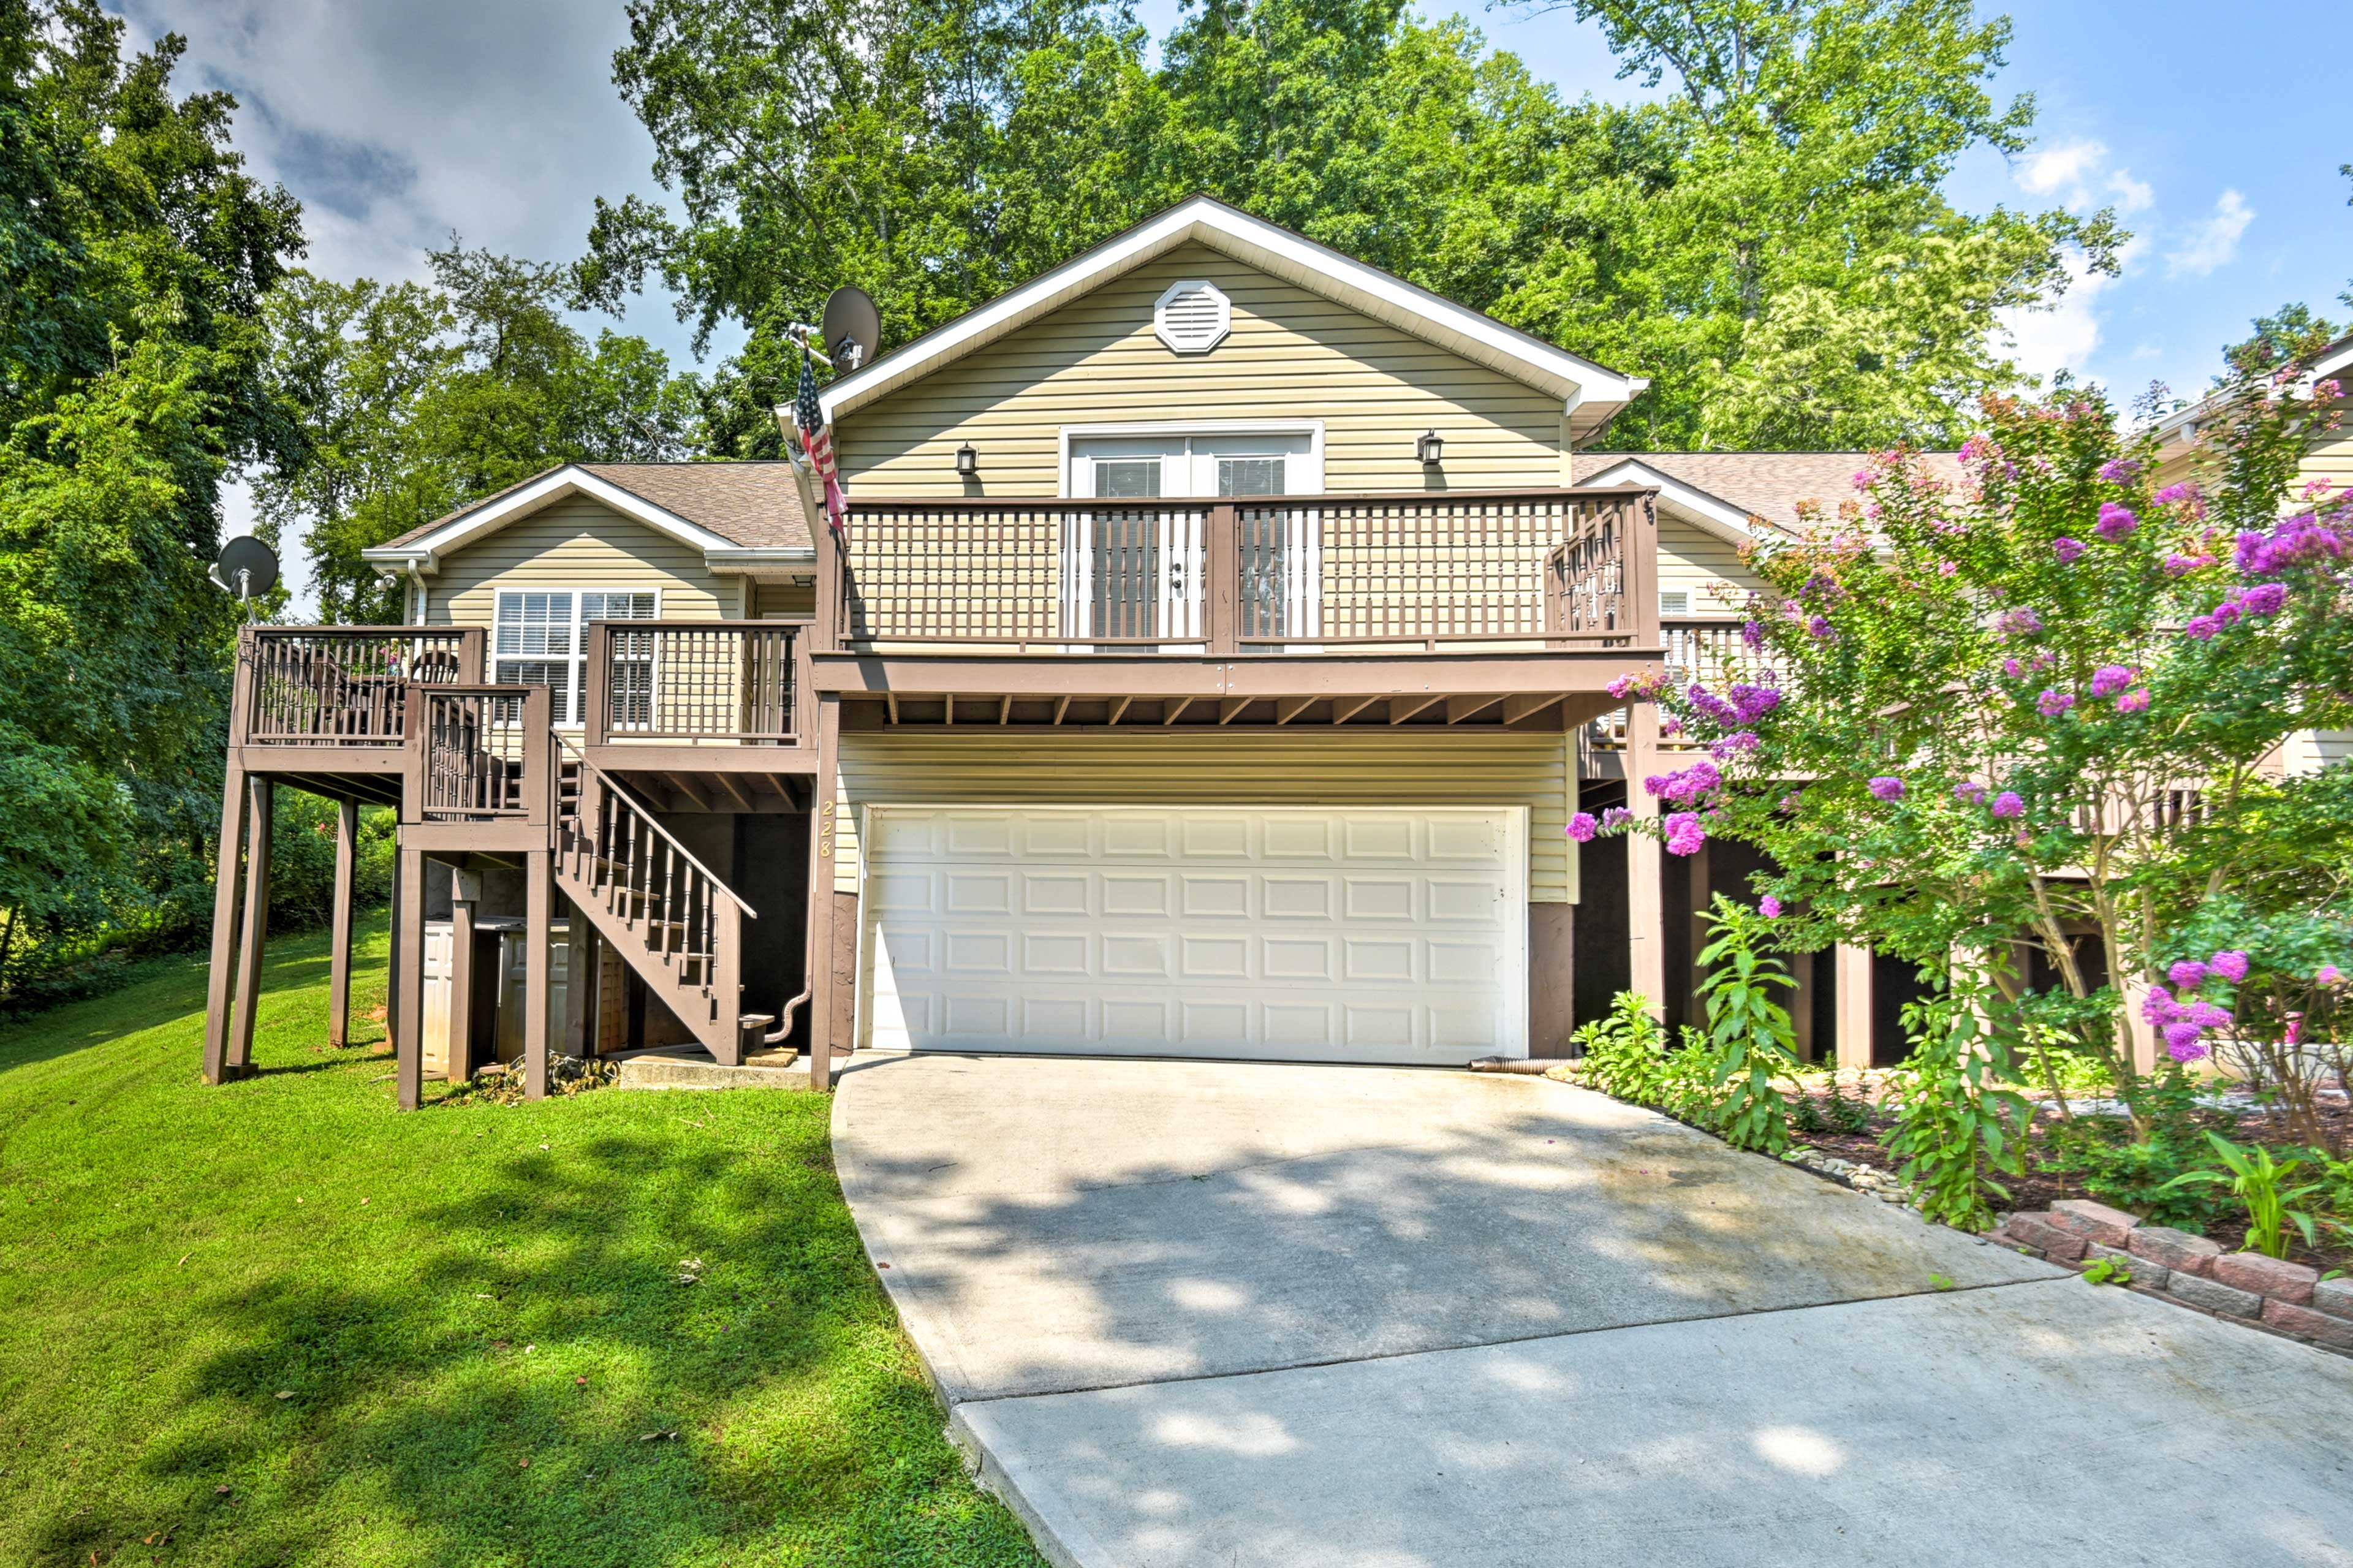 Book an unforgettable getaway to this LaFollette home!